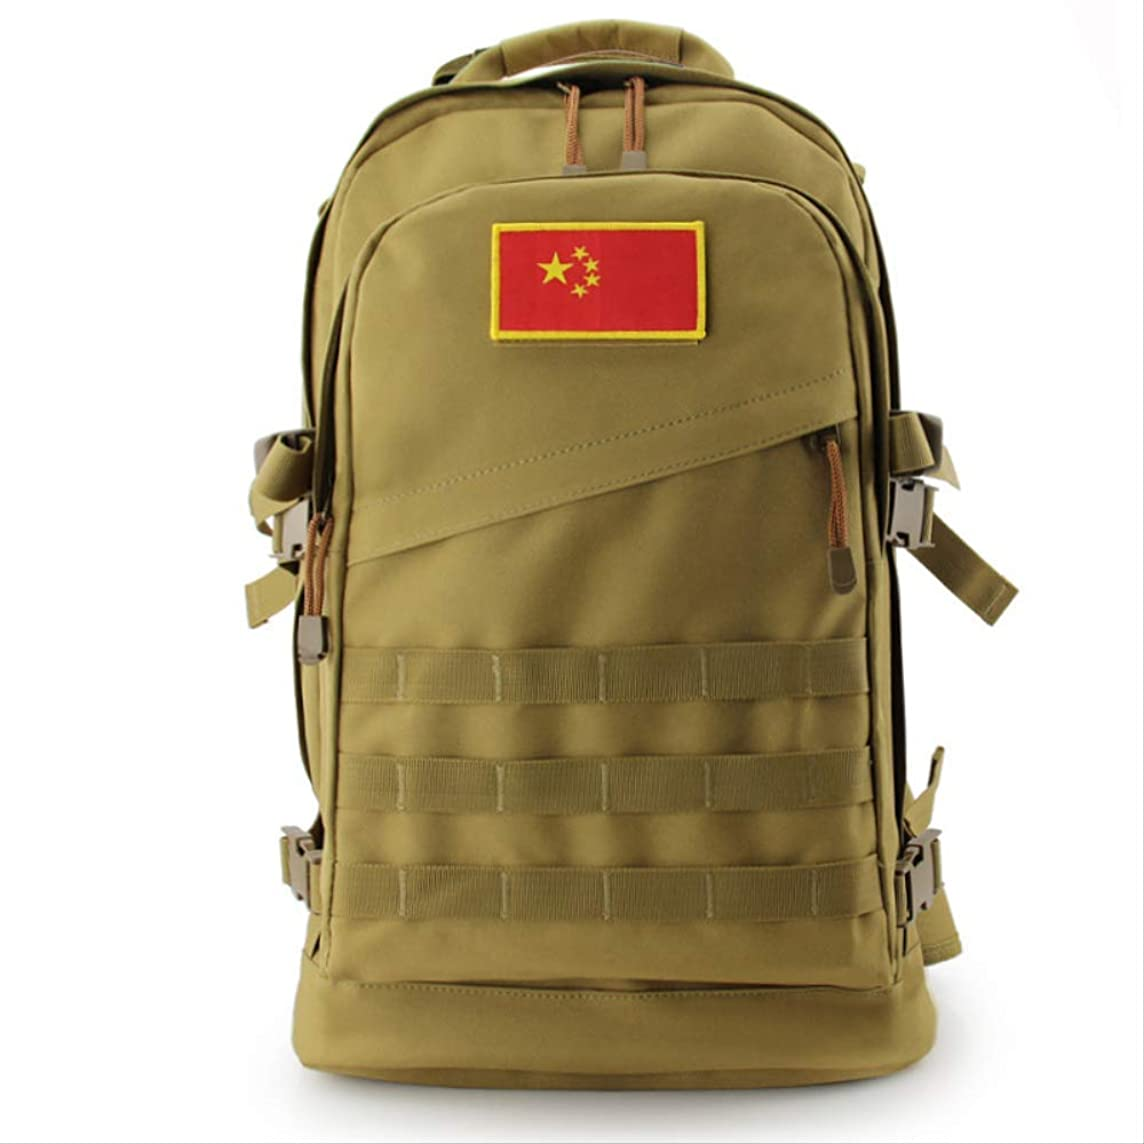 Camping backpackOutdoor 5 Color Unisex Military Army Tactical Backpack Waterproof Travel Rucksack For Camping Hiking Trekking Camouflage Bag Type C